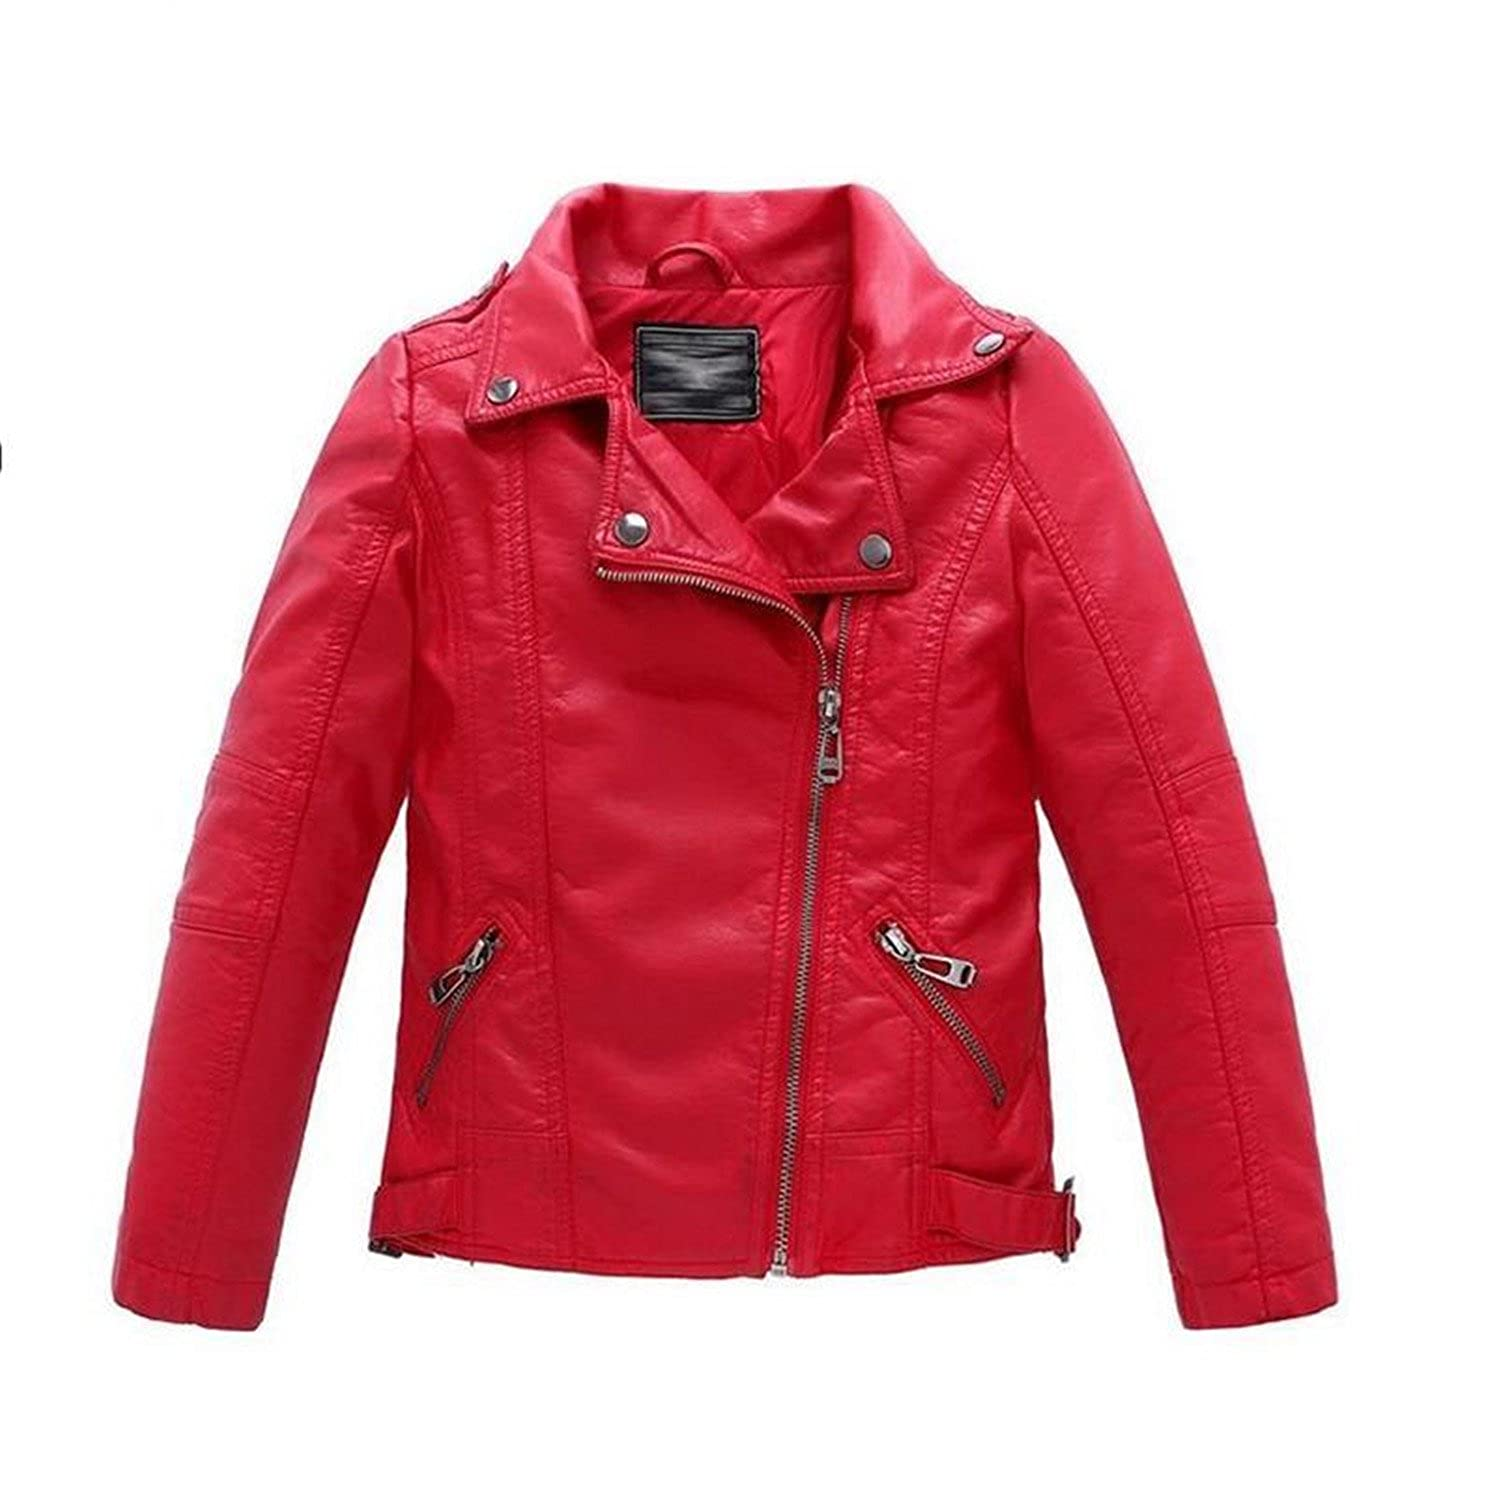 Amazon.com: Daerwen Girls Coats Teenager Toddlers Boys Leather Jackets Fashion Spring Autumn Children Outerwear New New Black Red Kids Clothes fashion: ...